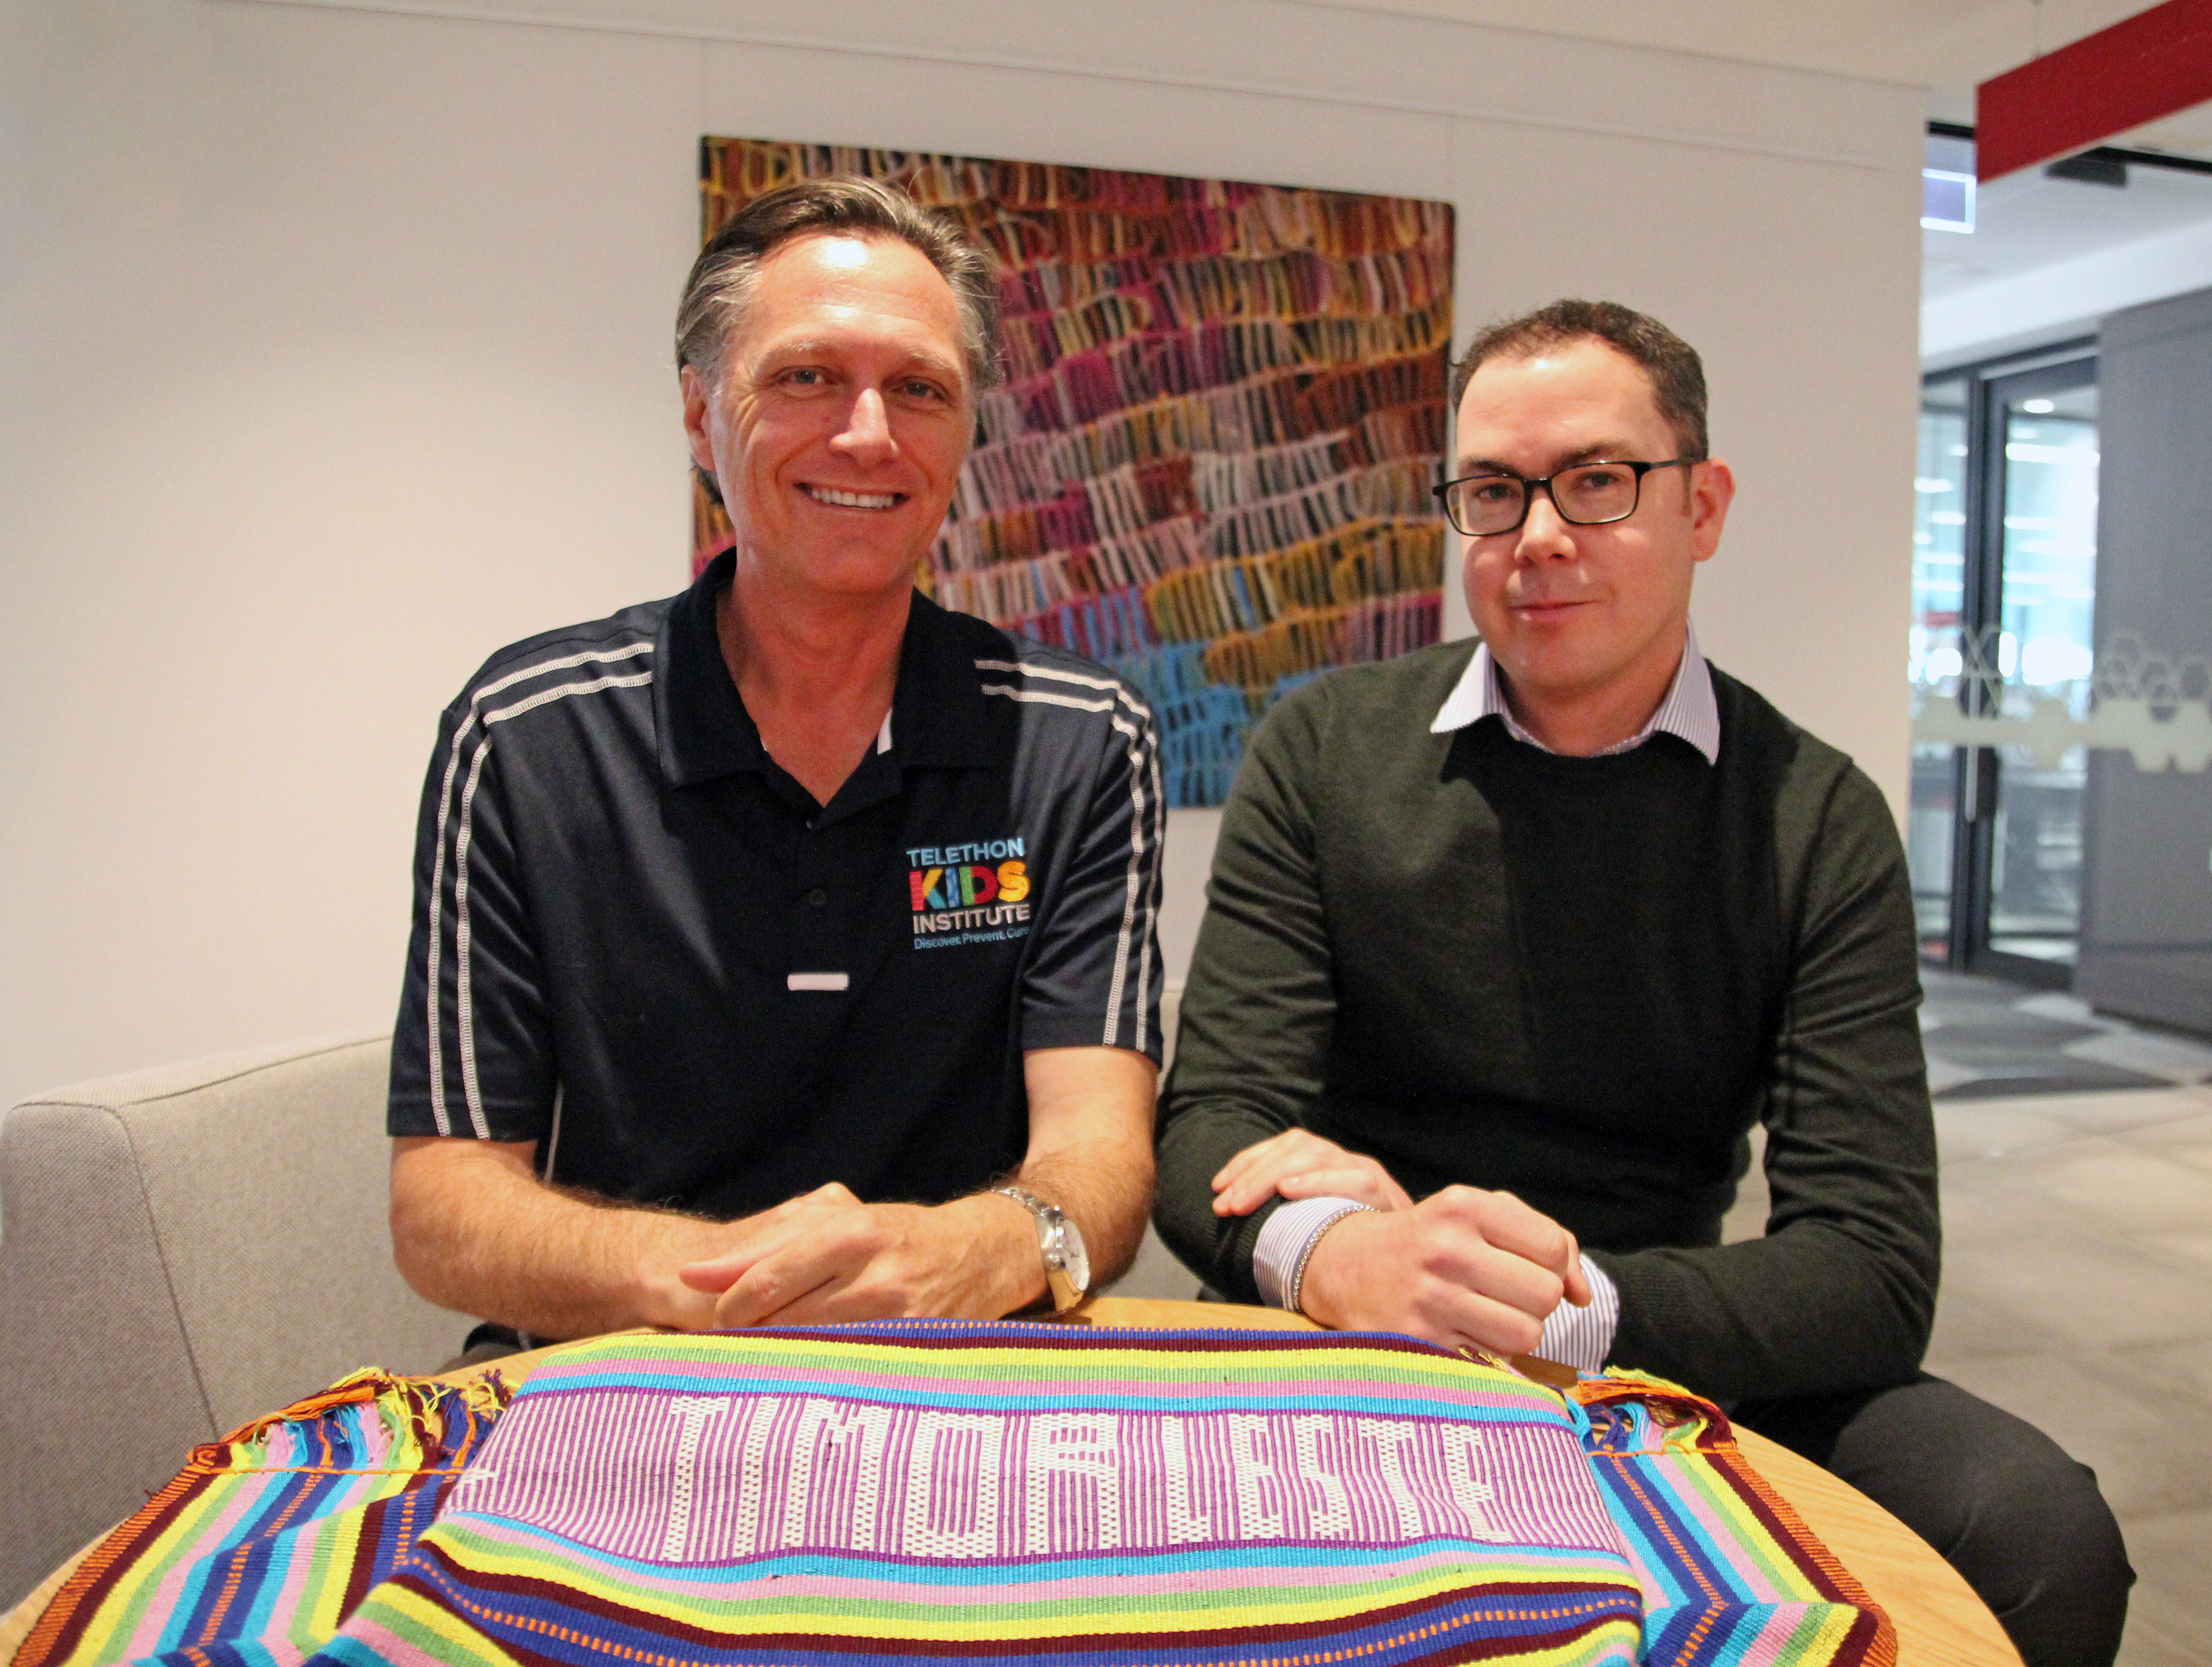 Co-authors of the paper from Telethon Kids Institute and Reach, Professor Jonathan Carapetis and Timothy Johnson